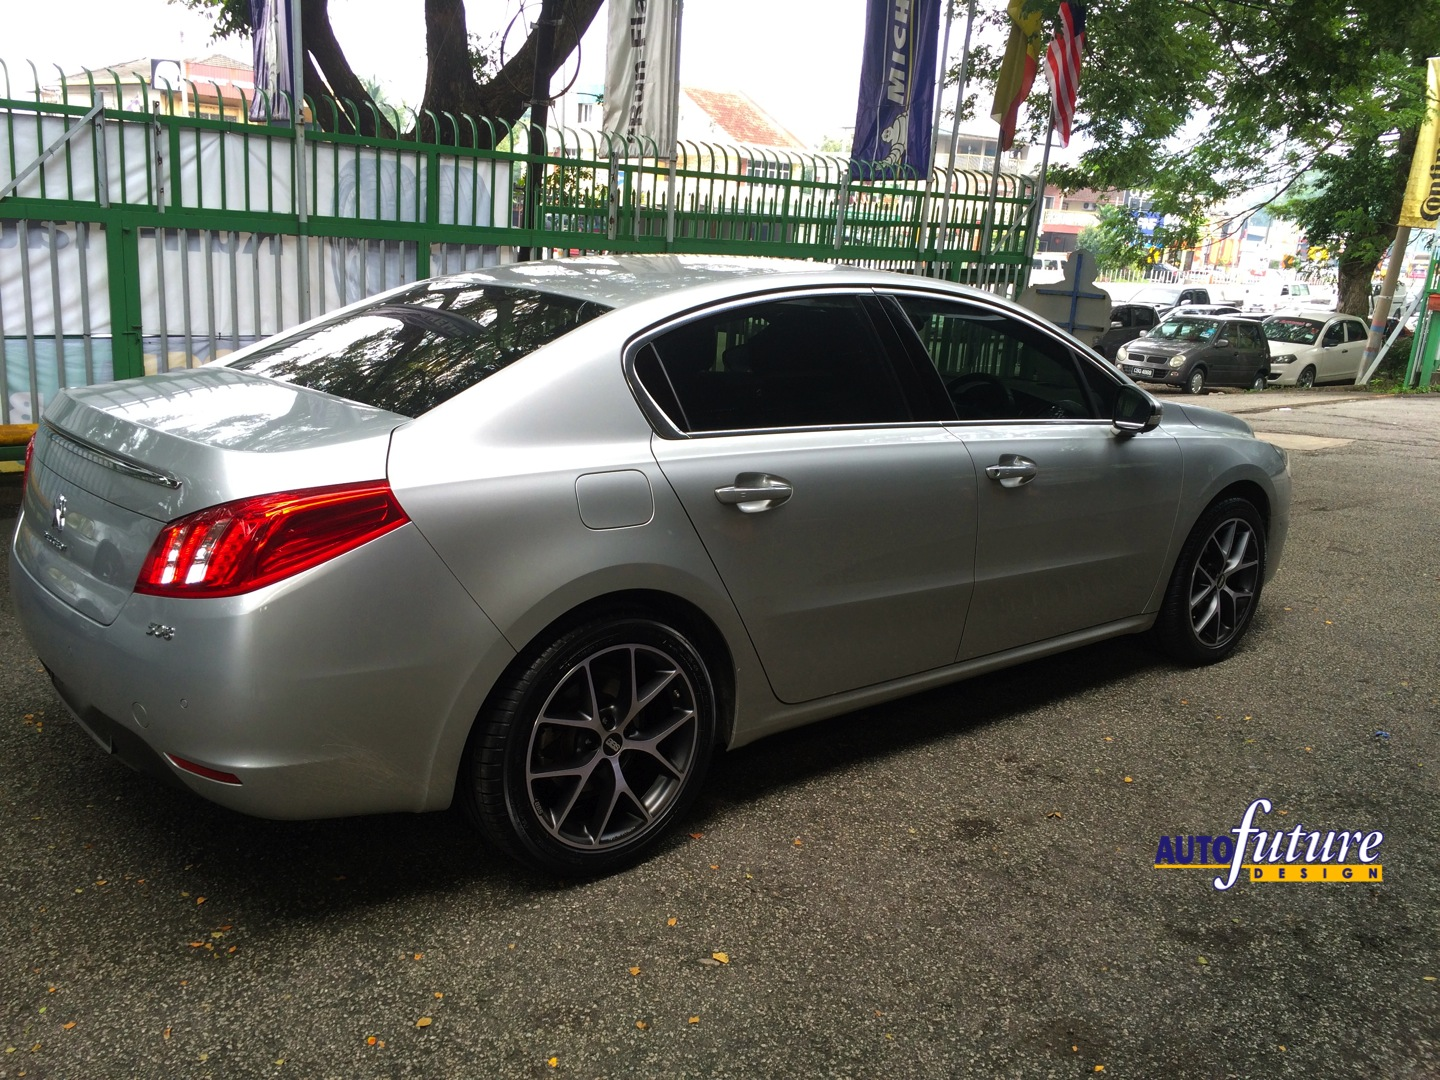 peugeot 508 with bbs sr wheels autofuture design sdn bhd. Black Bedroom Furniture Sets. Home Design Ideas